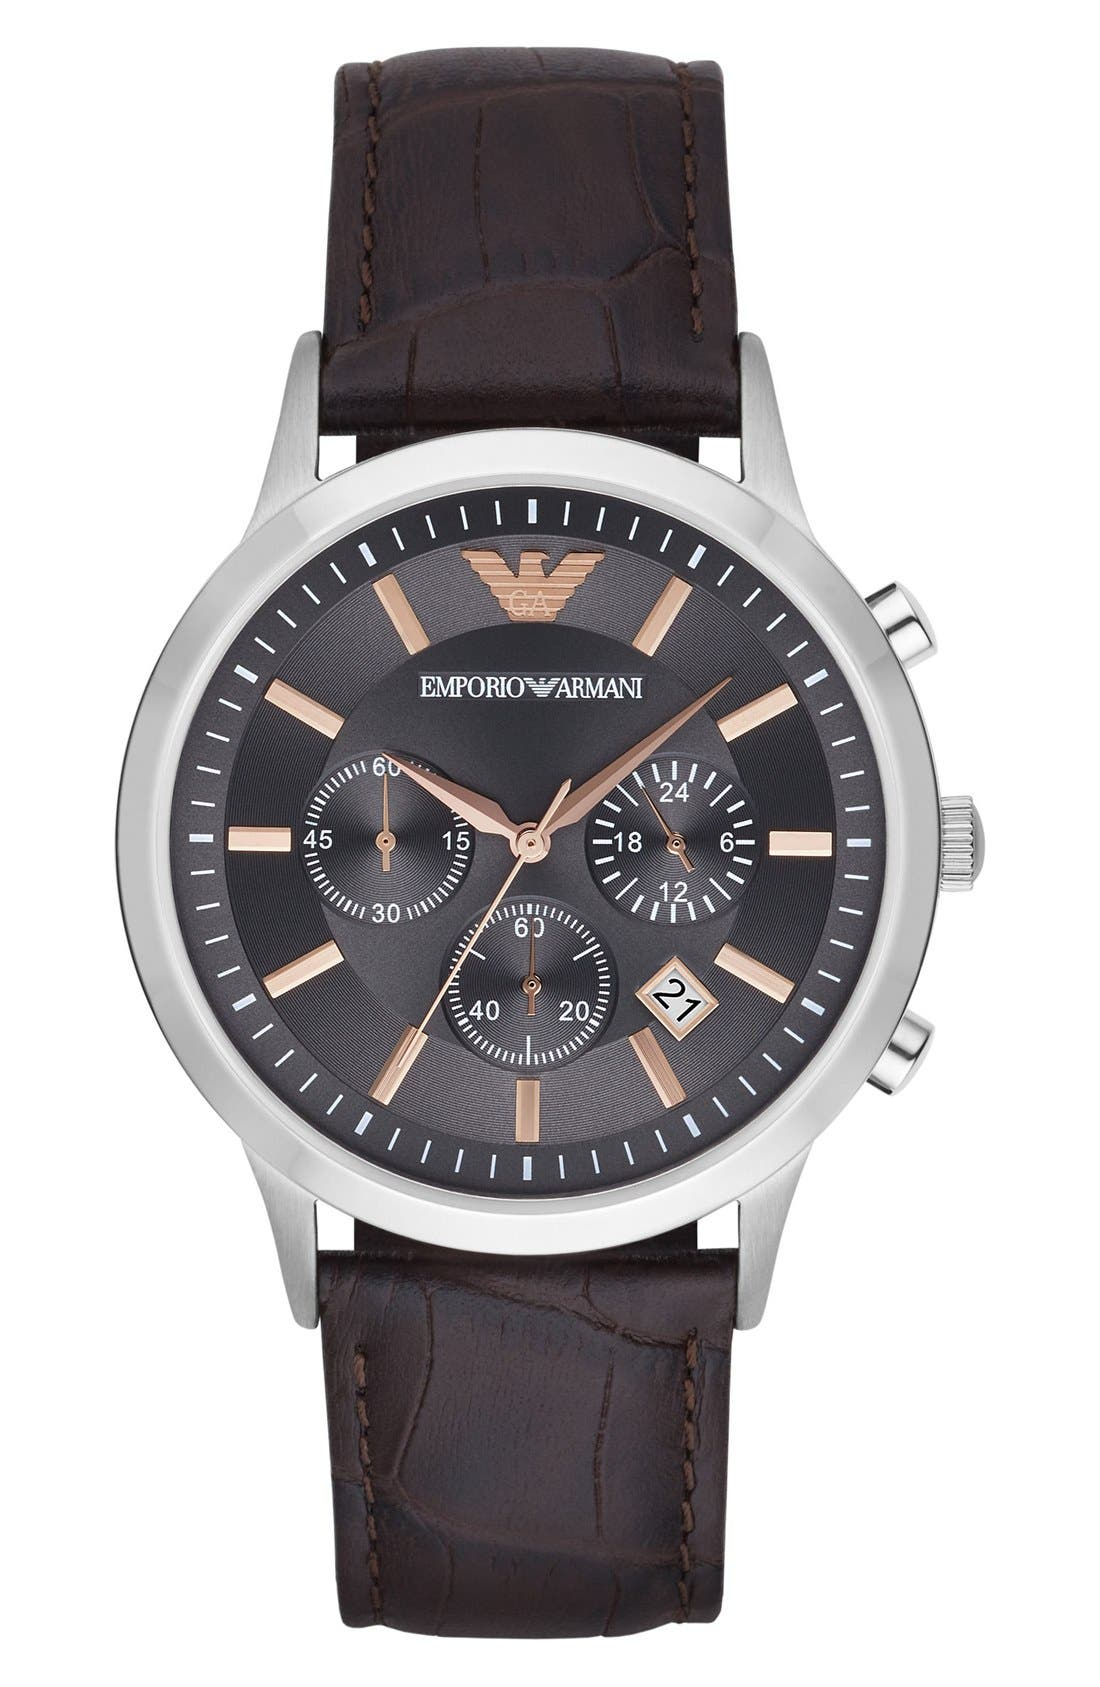 Main Image - Emporio Armani Chronograph Leather Strap Watch, 43mm